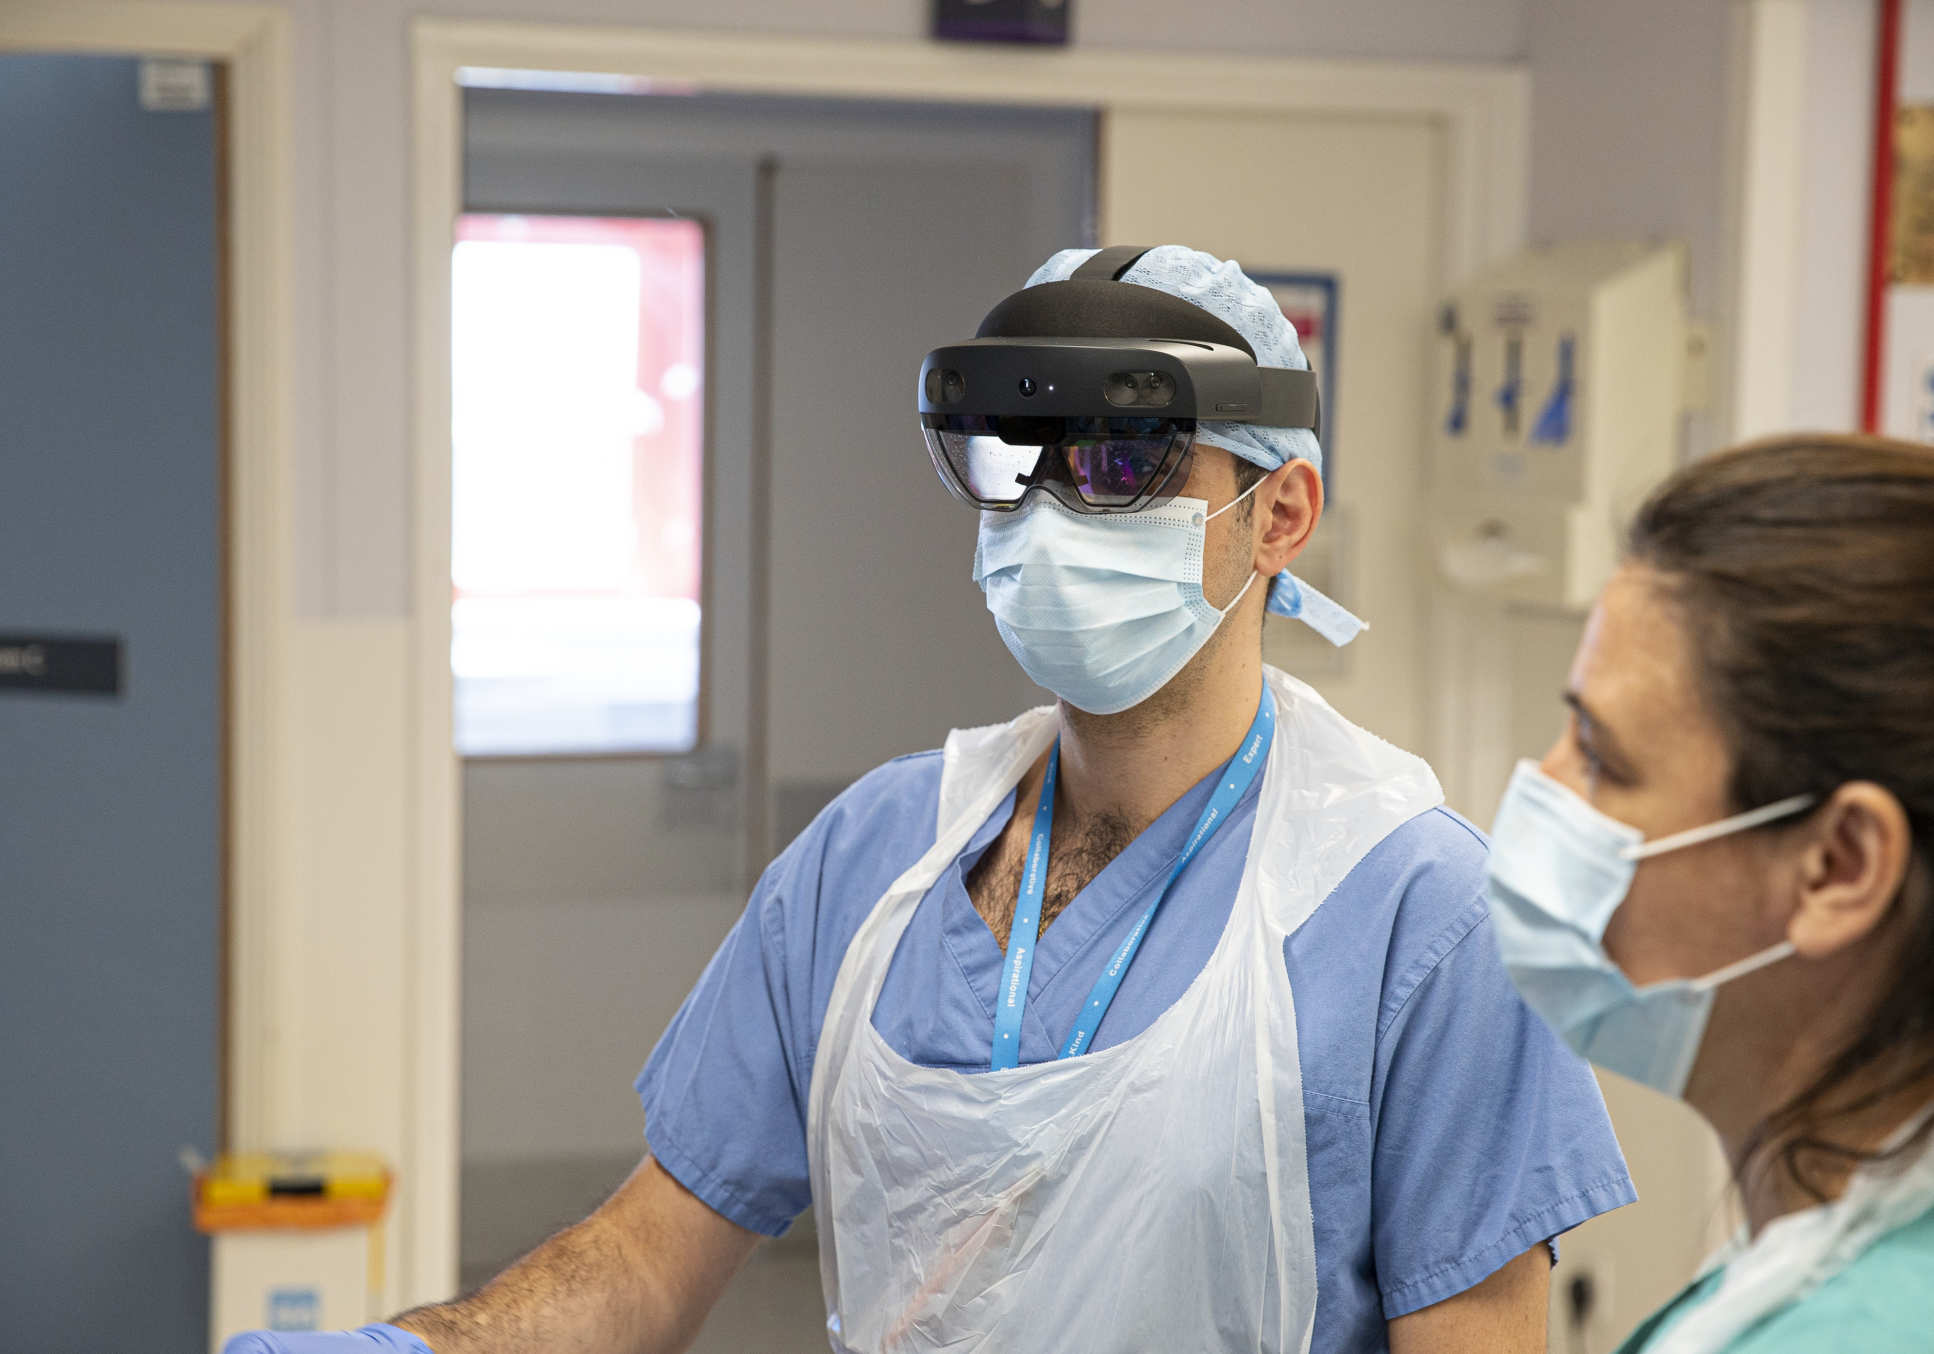 A photogrph of two doctors, one wearing a HoloLens headset